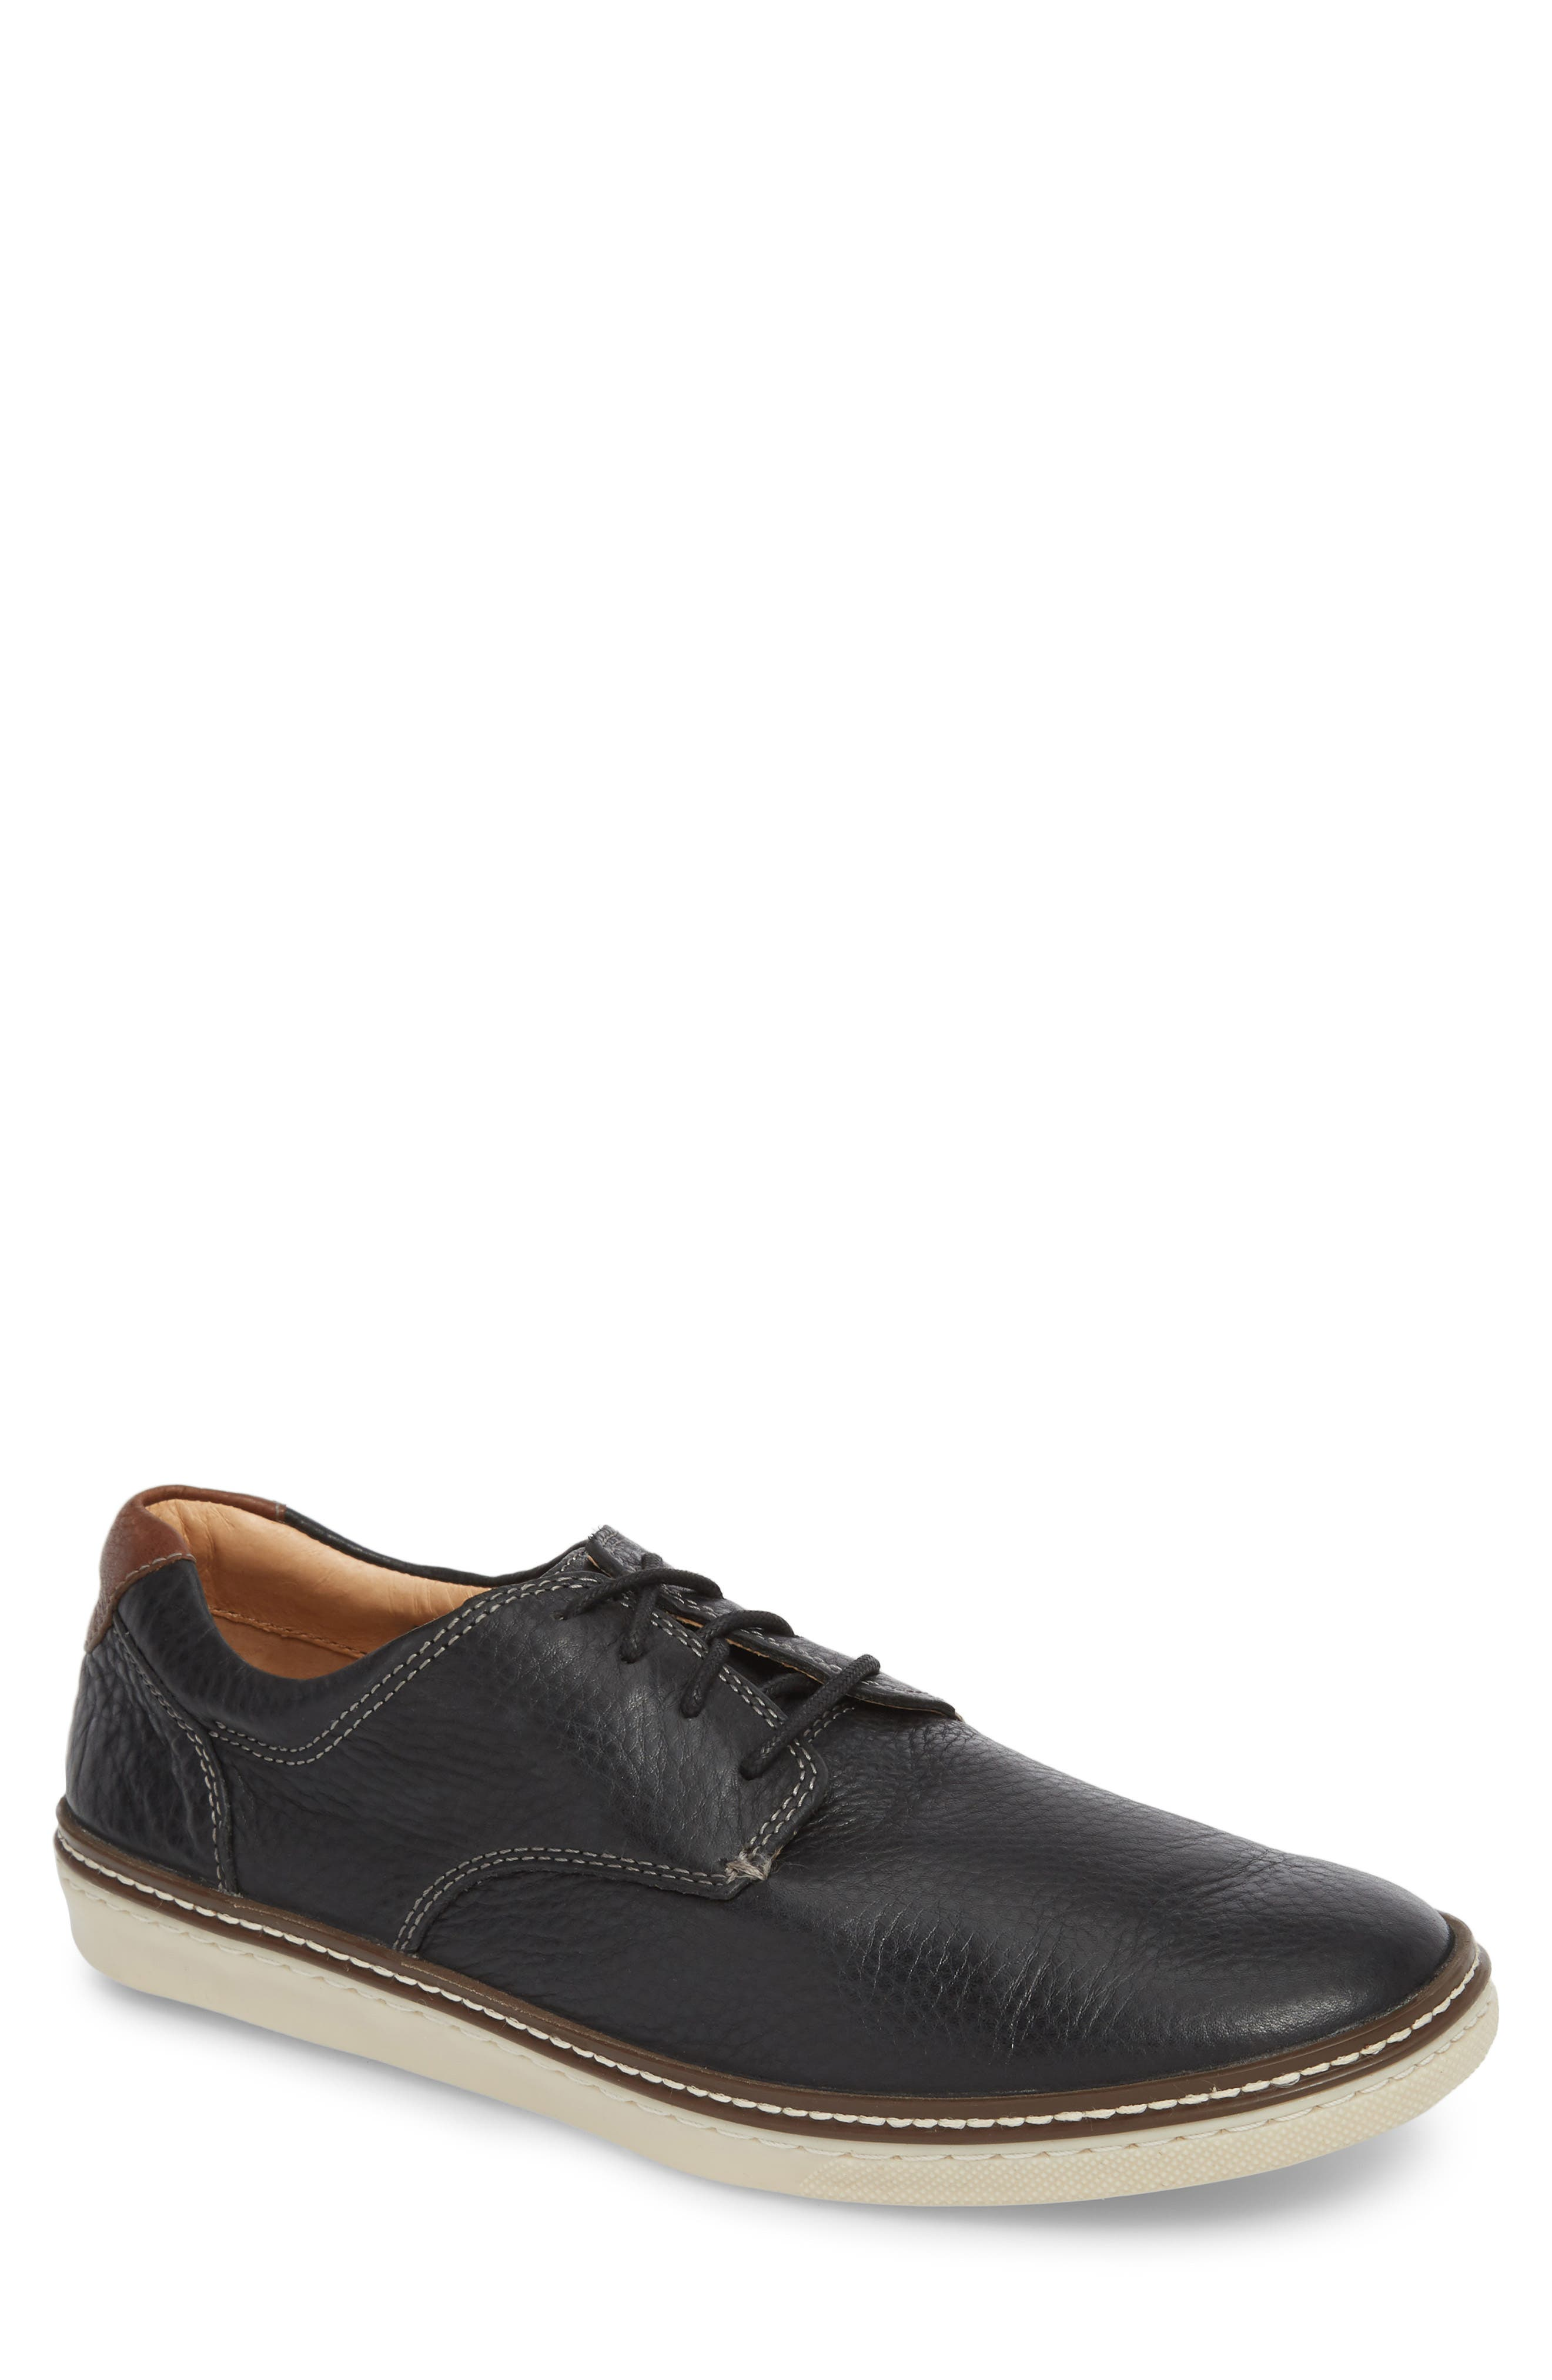 JOHNSTON & MURPHY McGuffey Derby Sneaker, Main, color, BLACK LEATHER